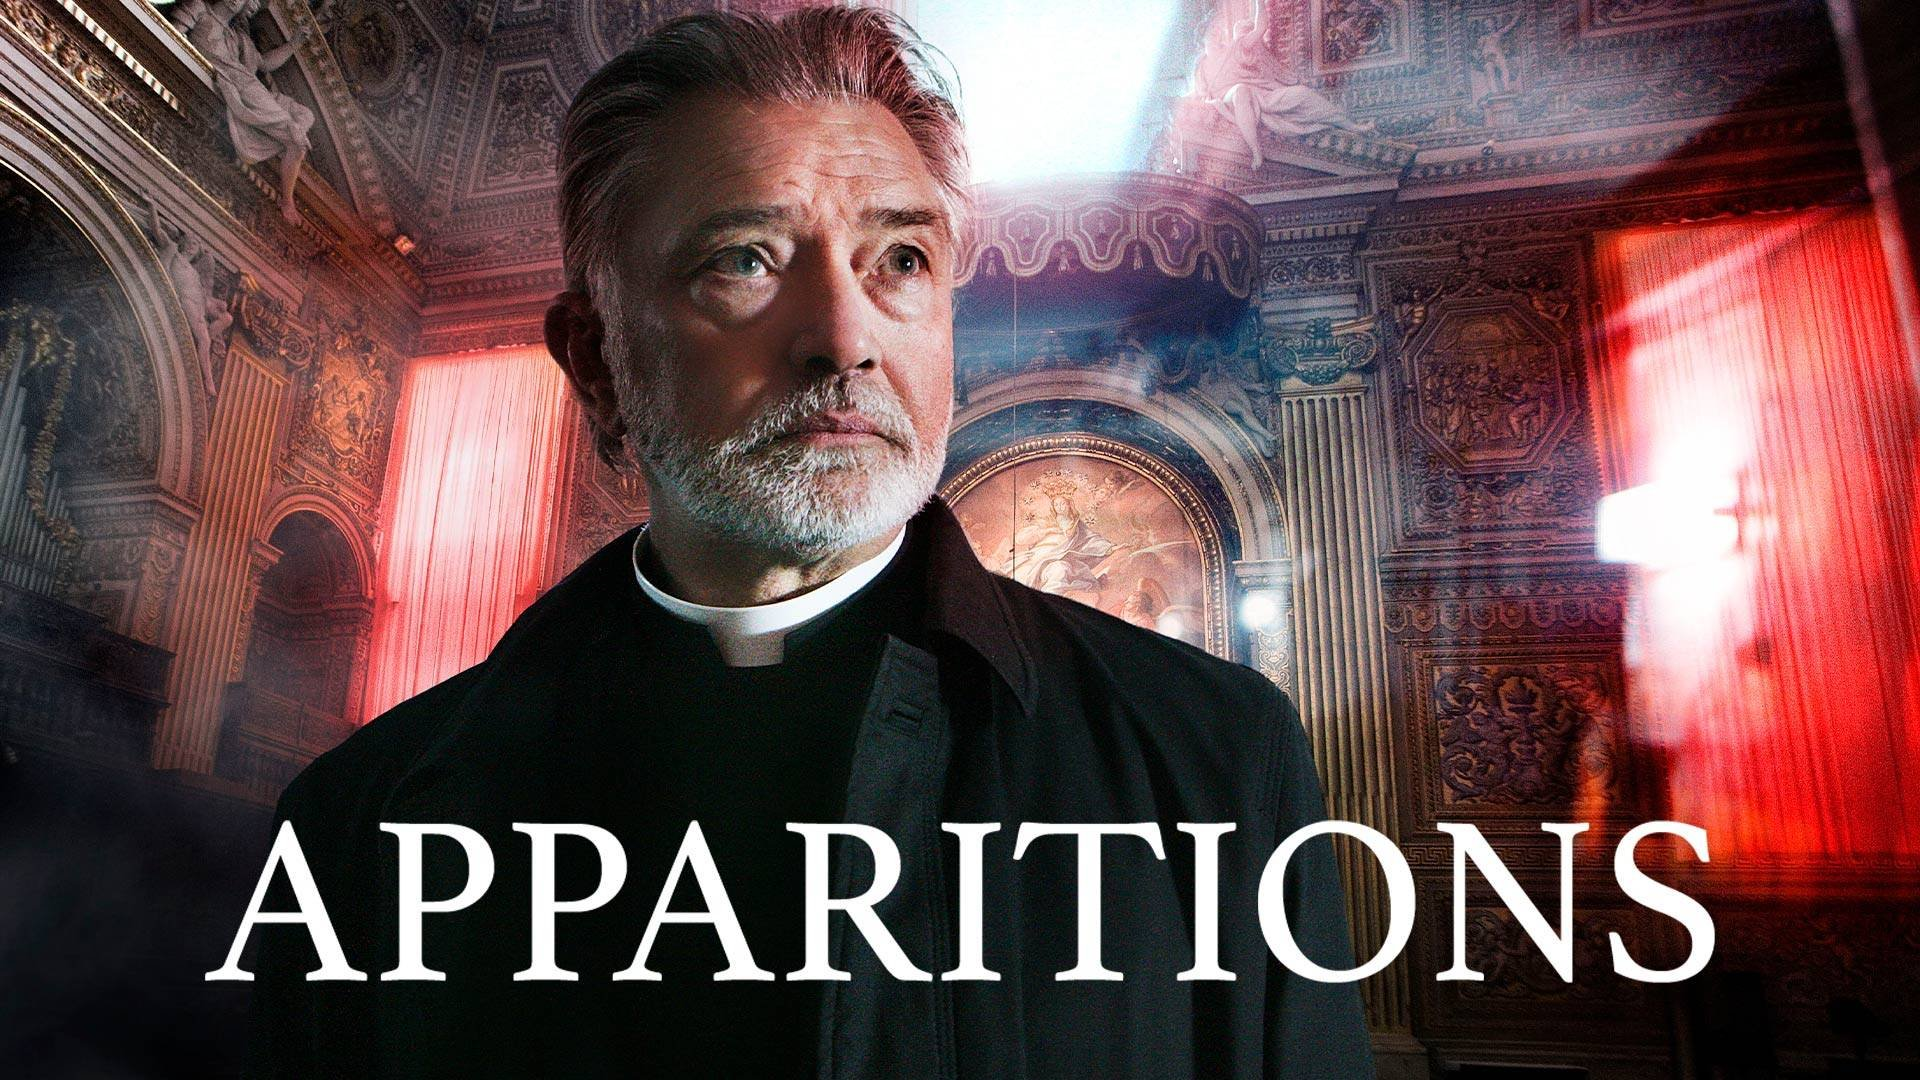 Apparitions on BritBox UK